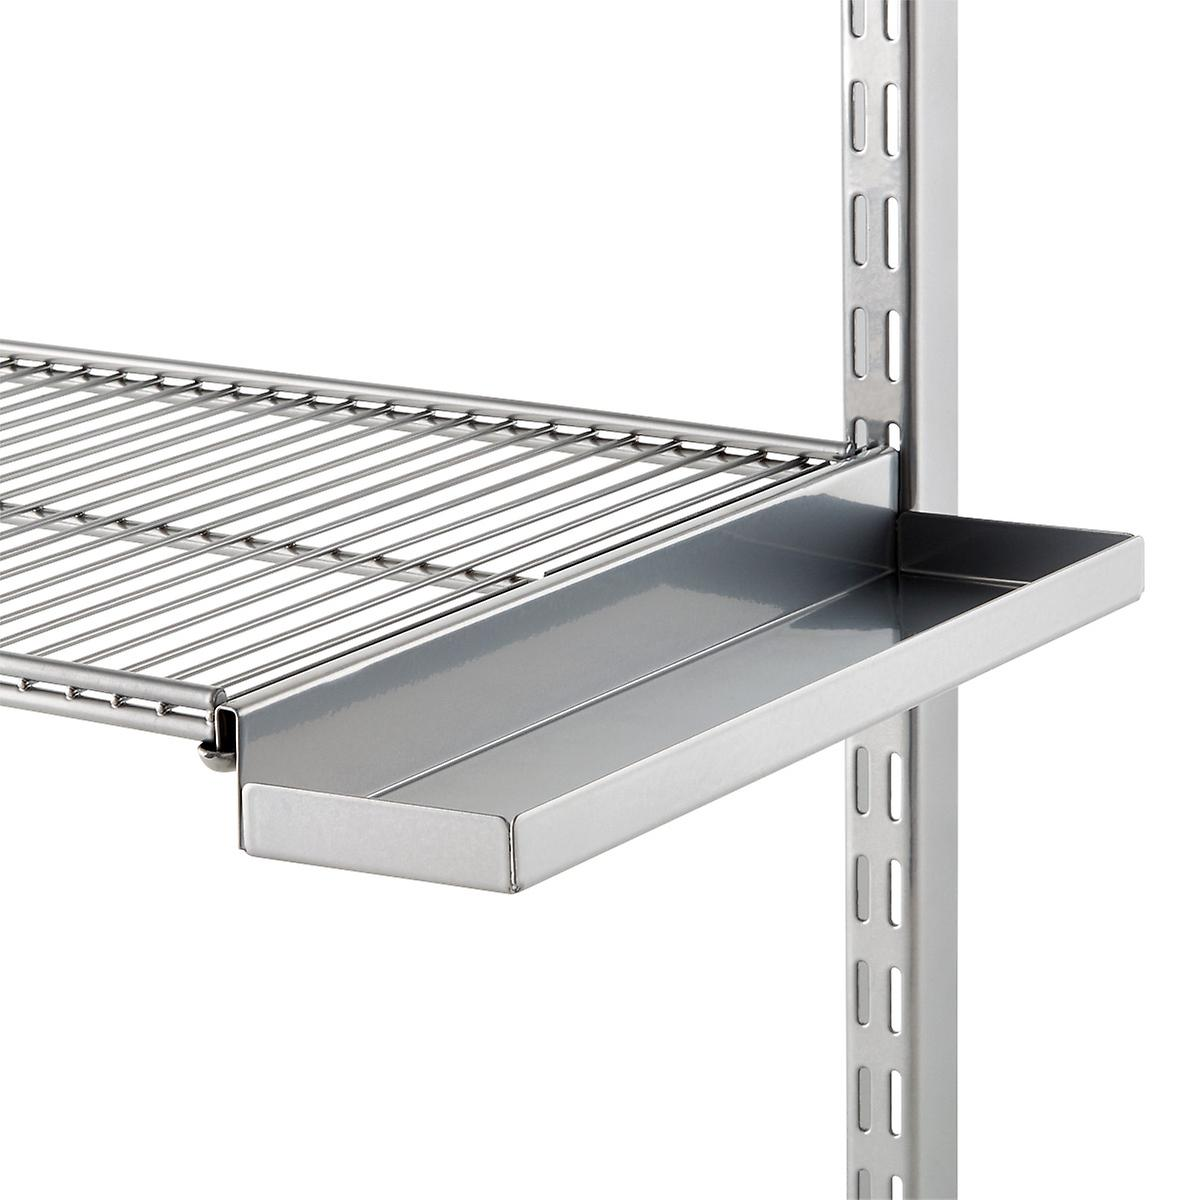 elfa Ventilated Shelf Bracket Accessories